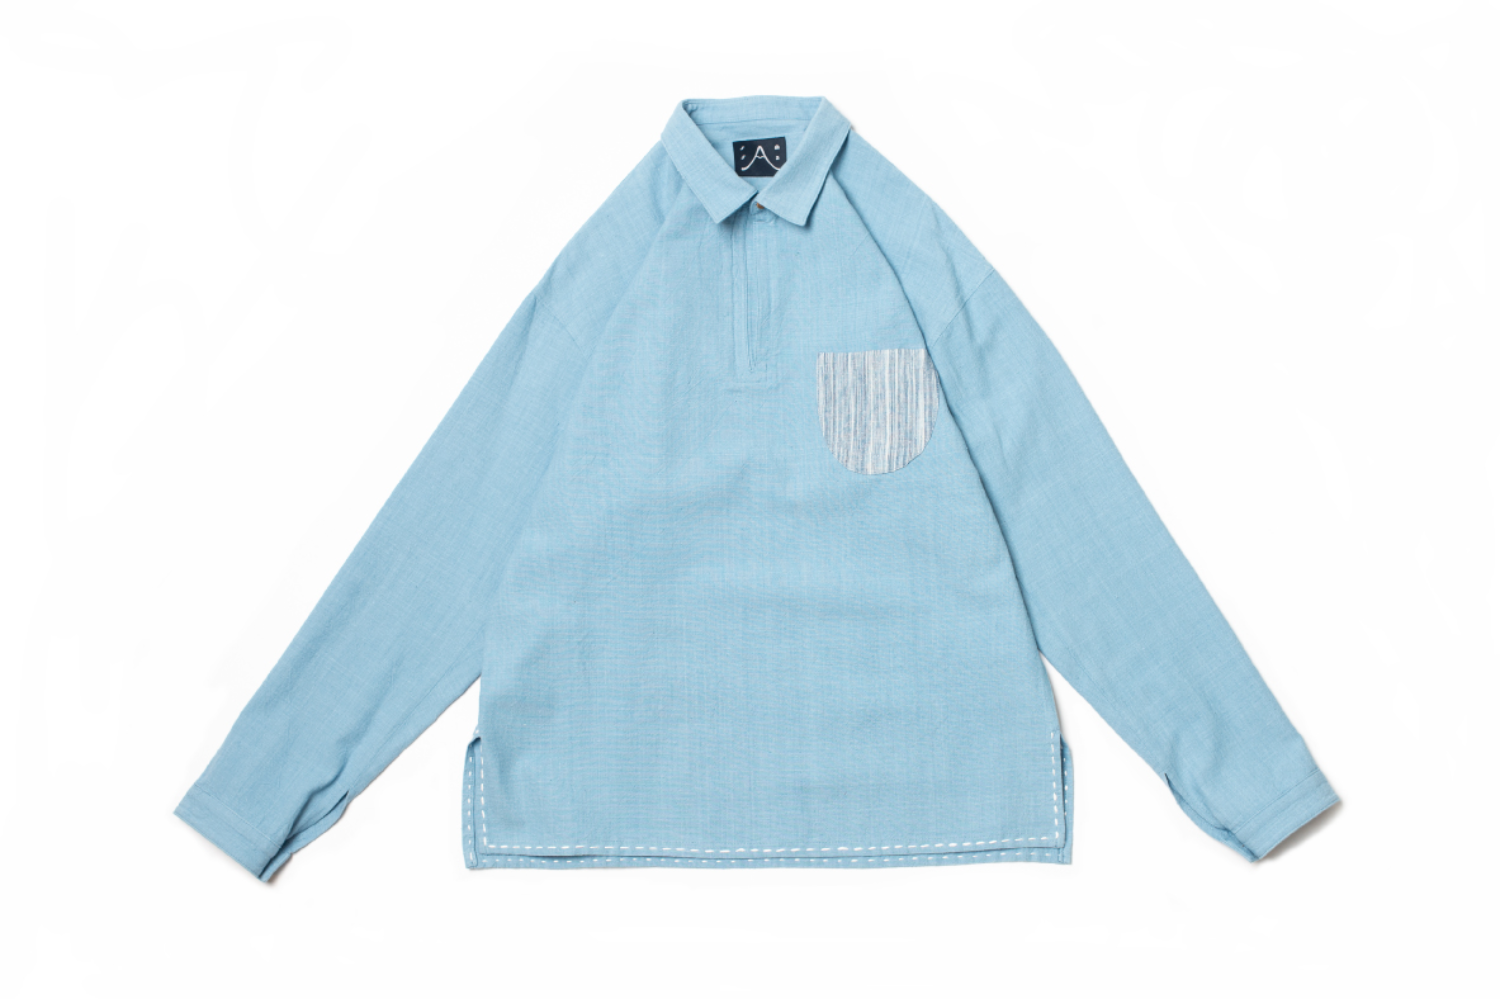 P.P Tunic Sky Blue Shirt C